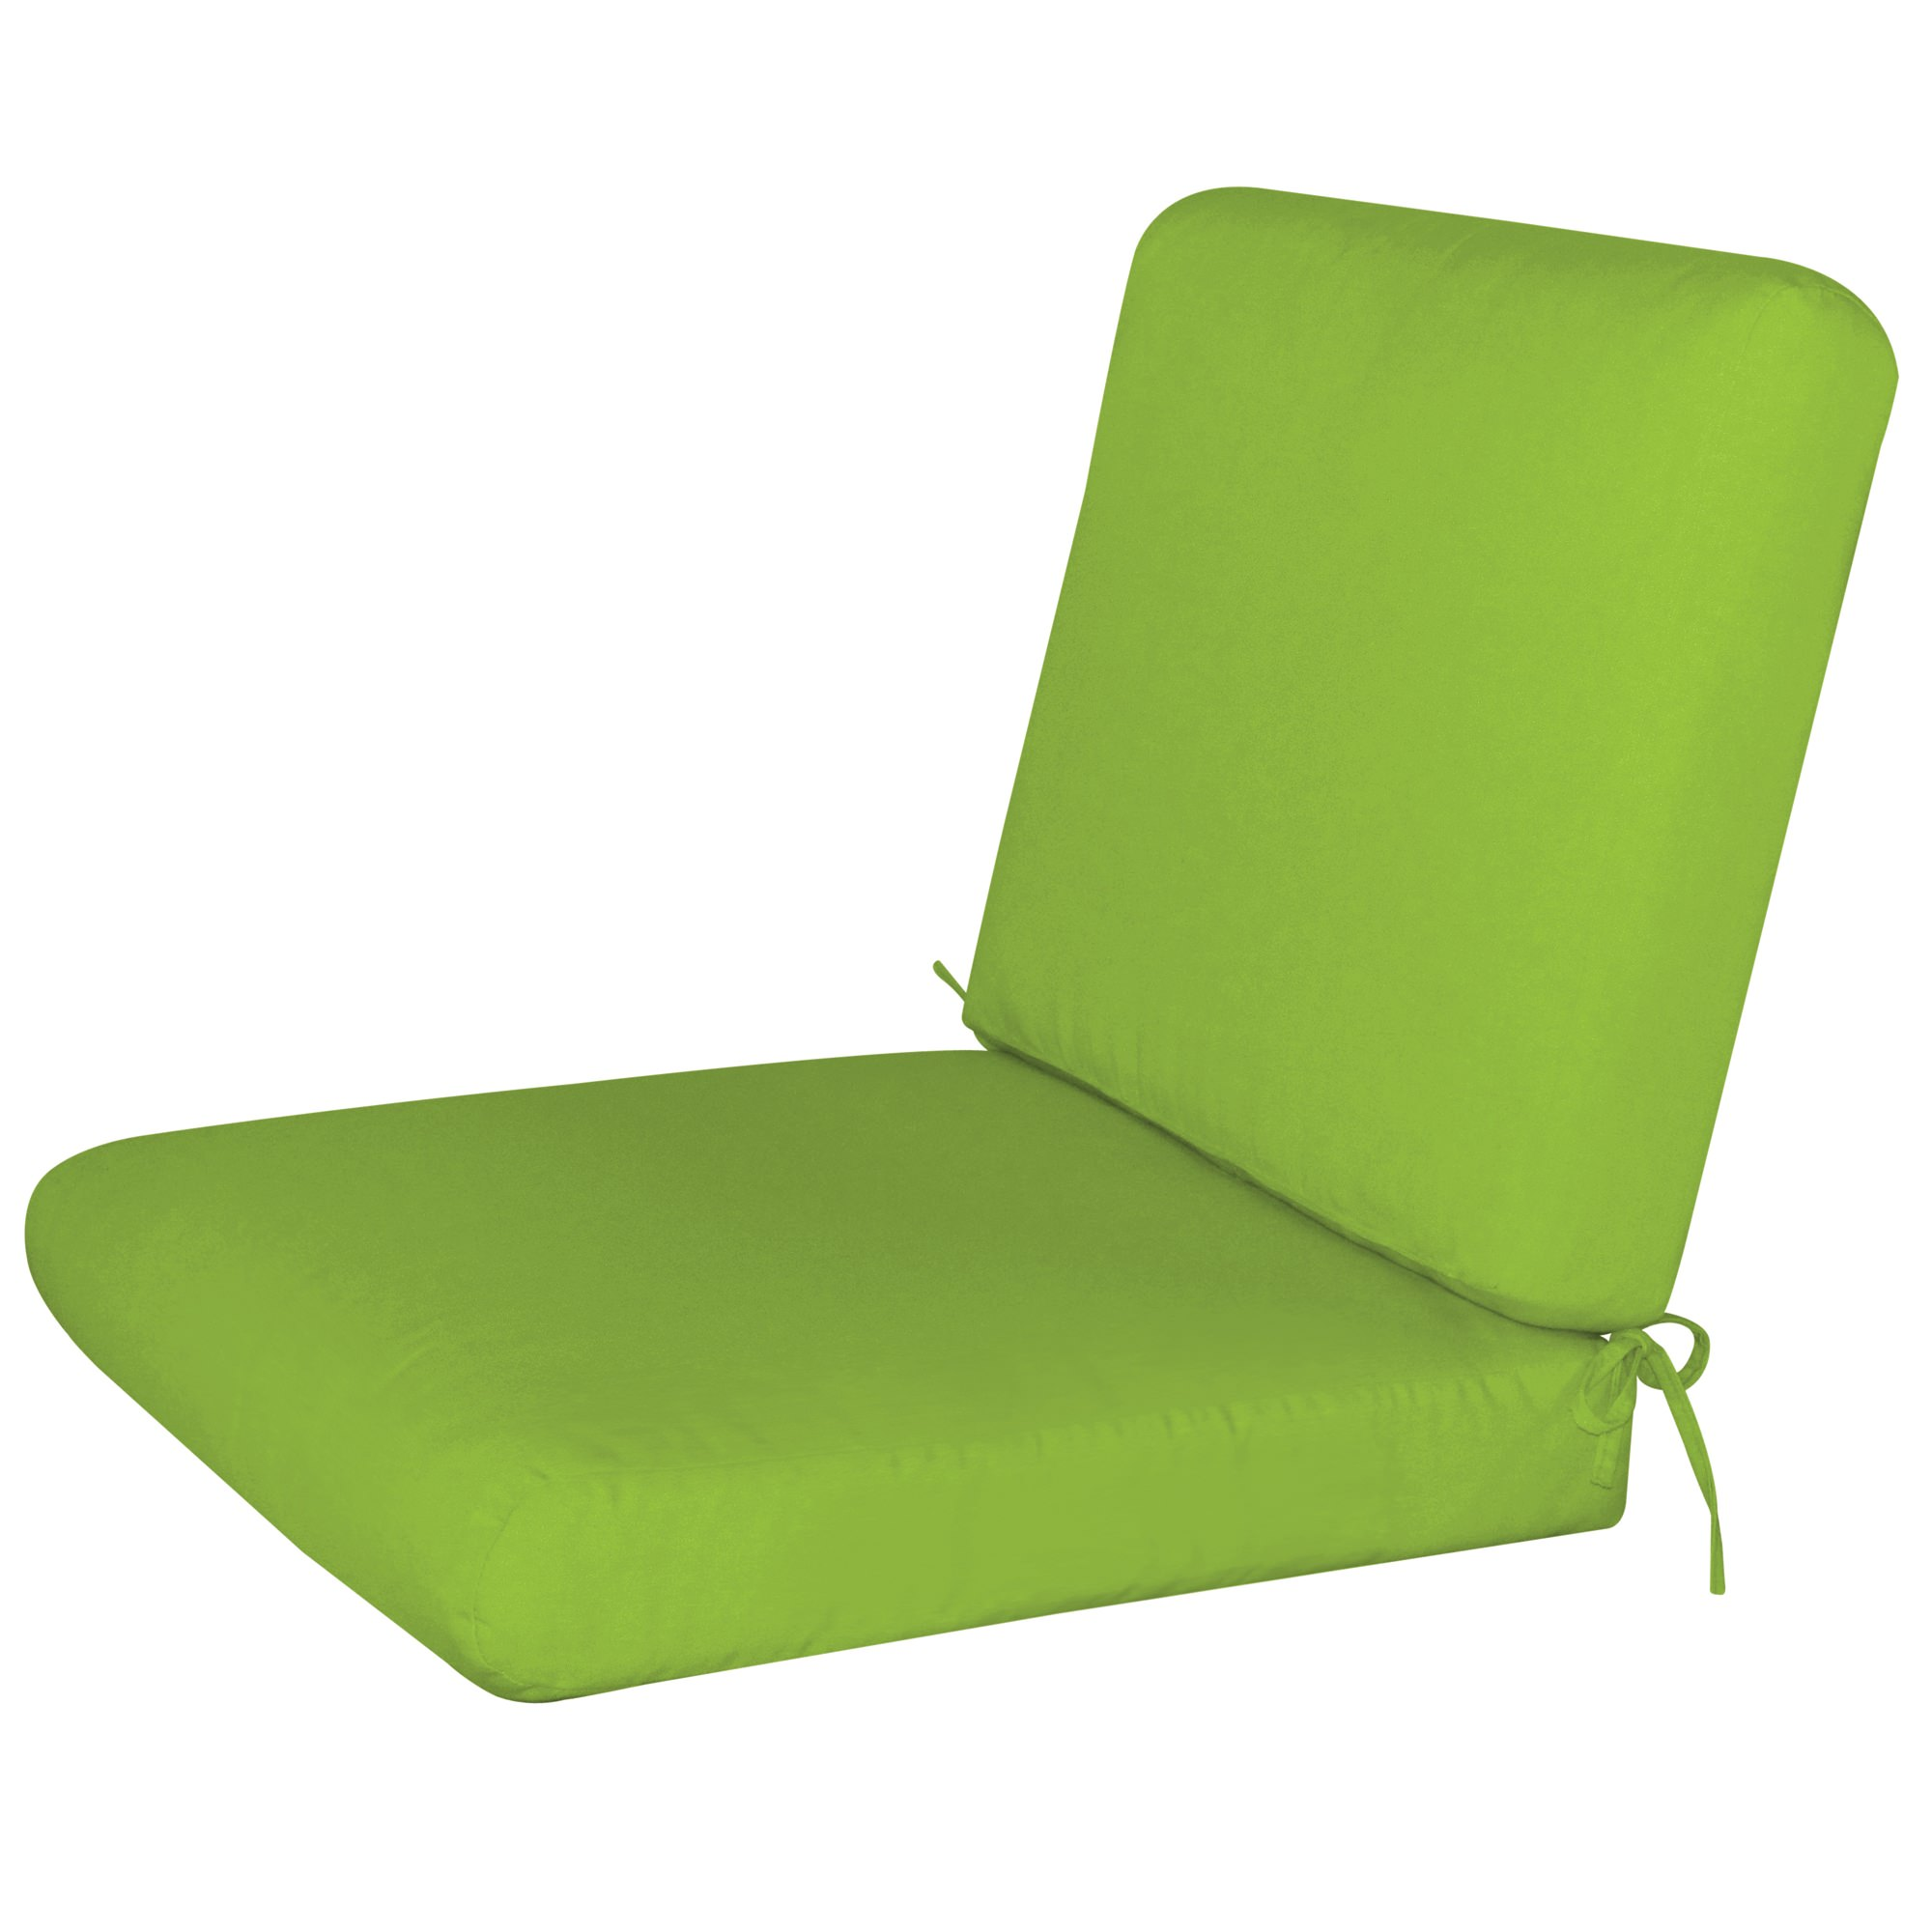 Bullnost 2 Piece Club Chair Sunbrella Cushion